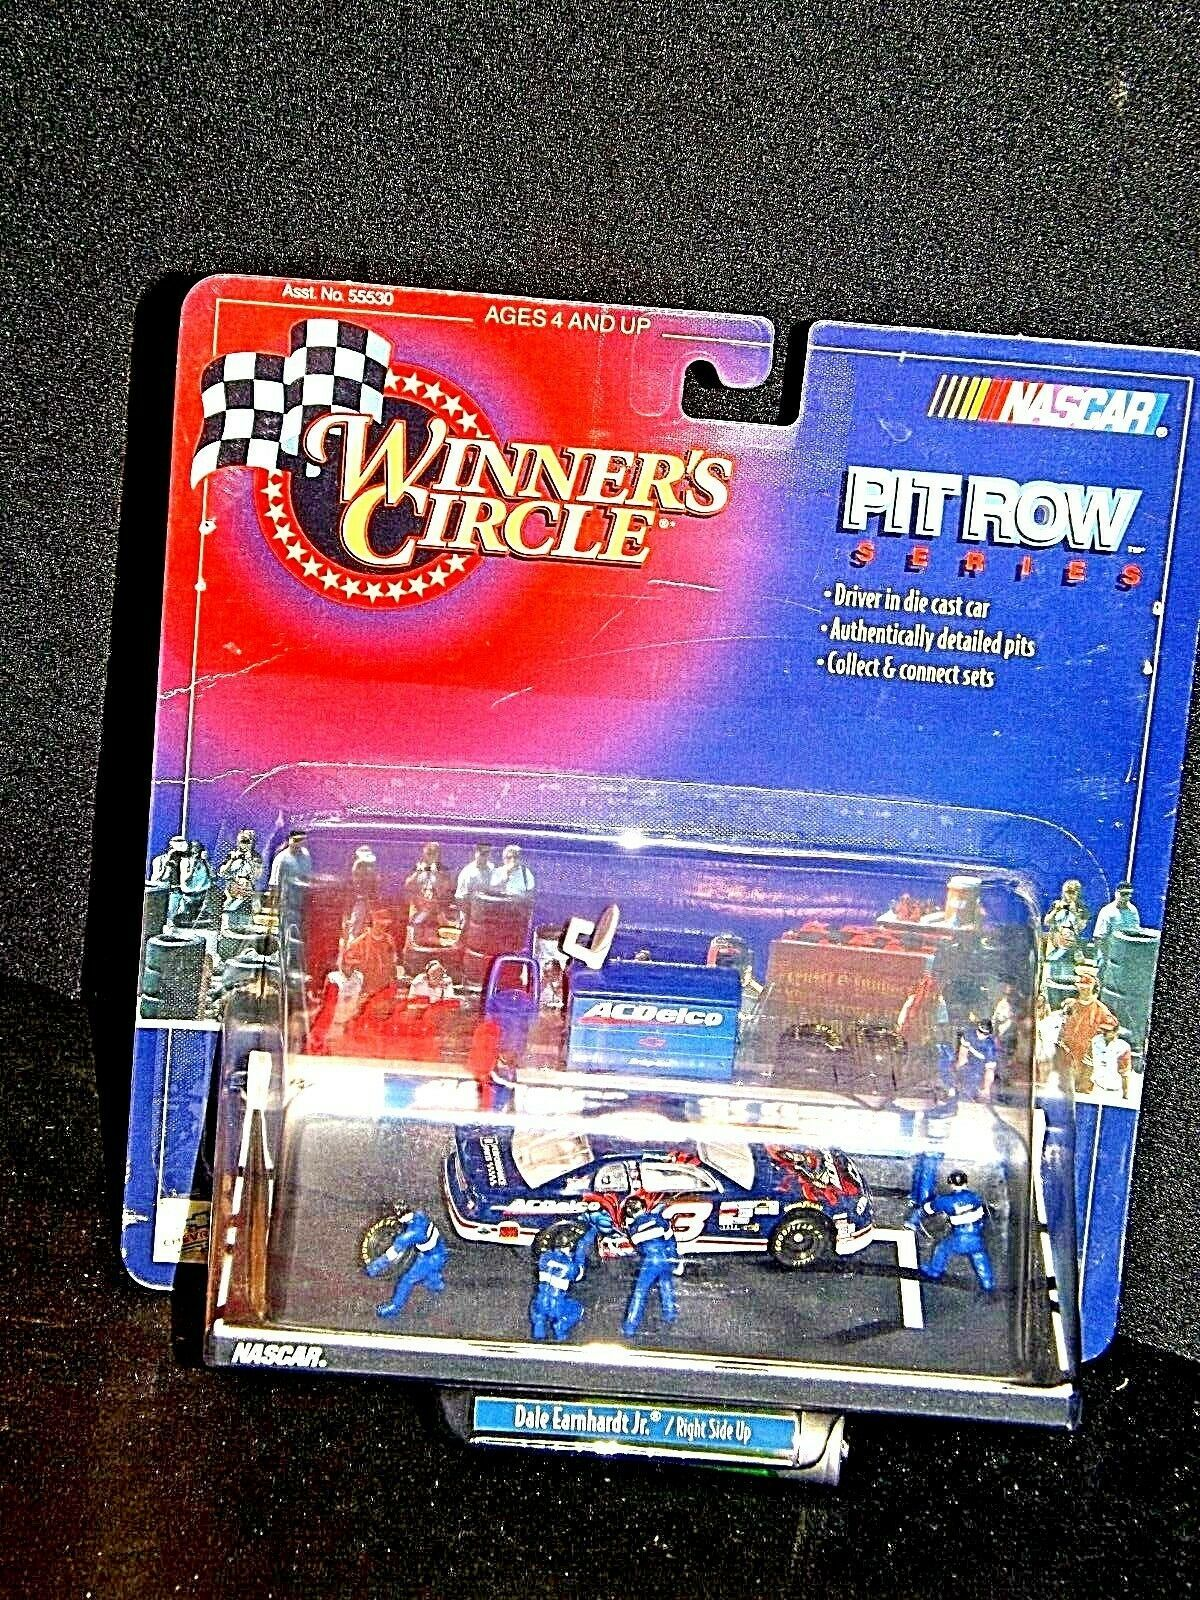 Winner's Circle NASCAR Pit Row Series Right Side Up#3 blue Dale Earnhardt Jr.